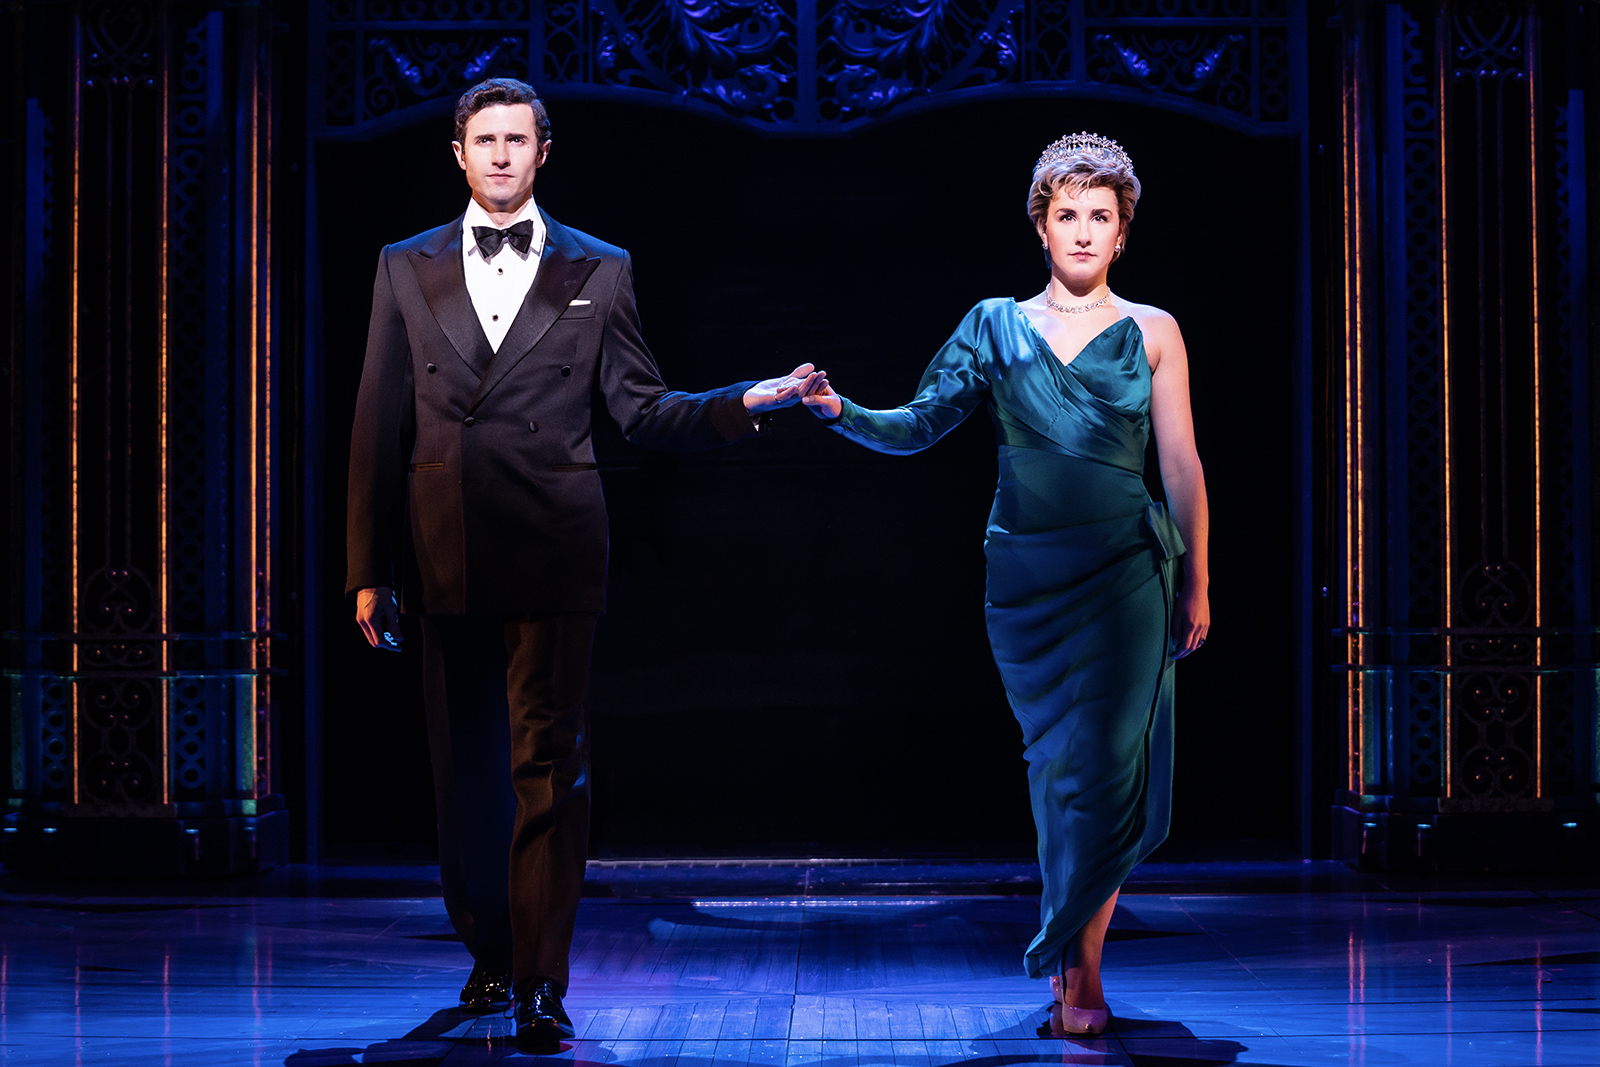 The actors playing Charles and Diana are holding hands and facing the camera. They are dressed in formal attire and have serious facial expressions.